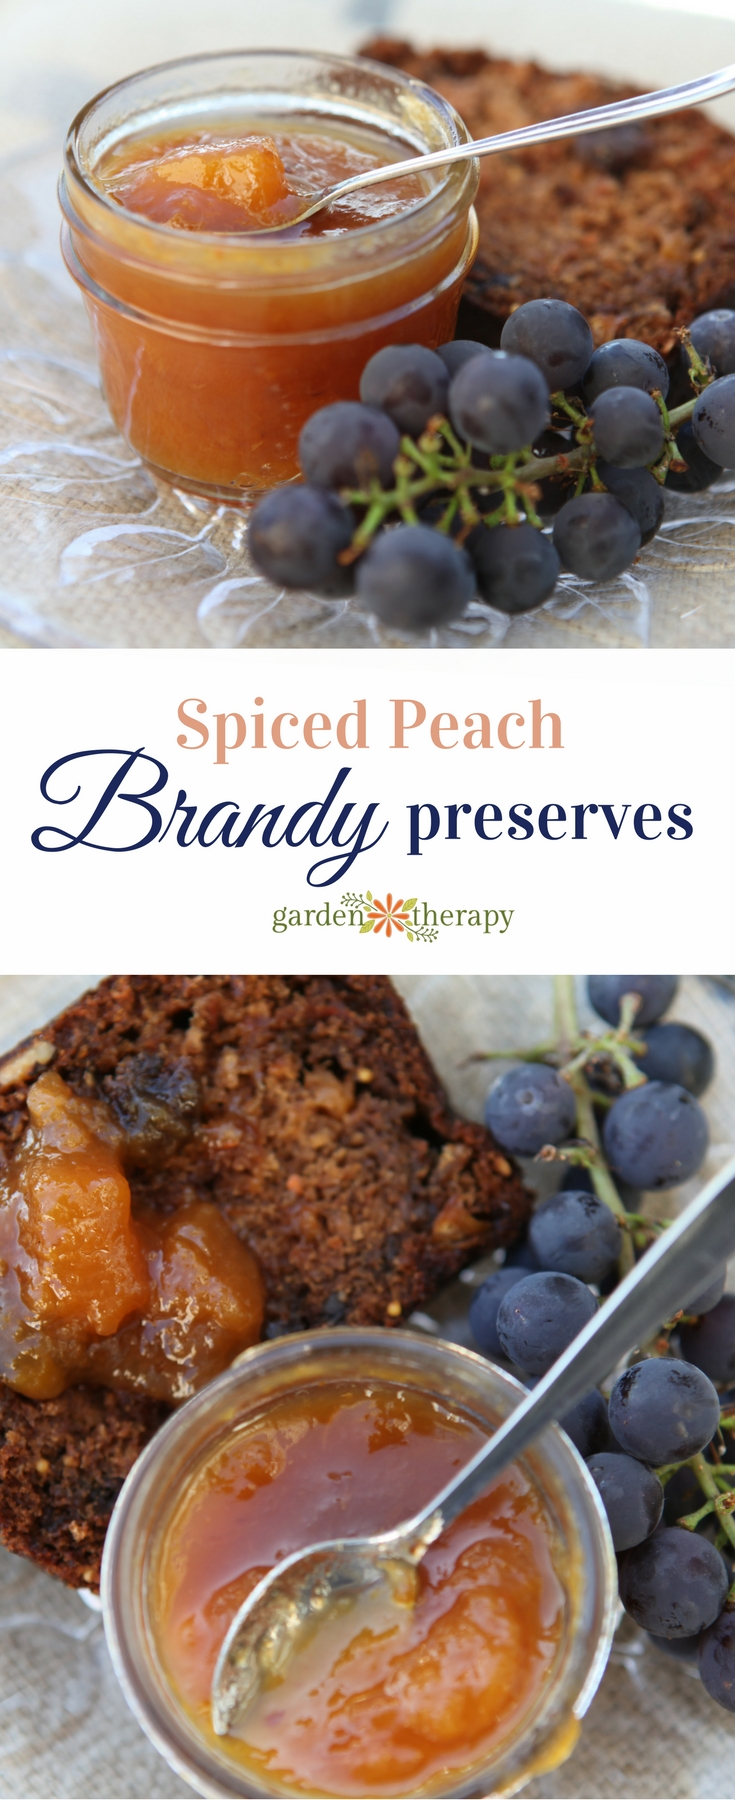 Spiced peach brandy preserves recipe